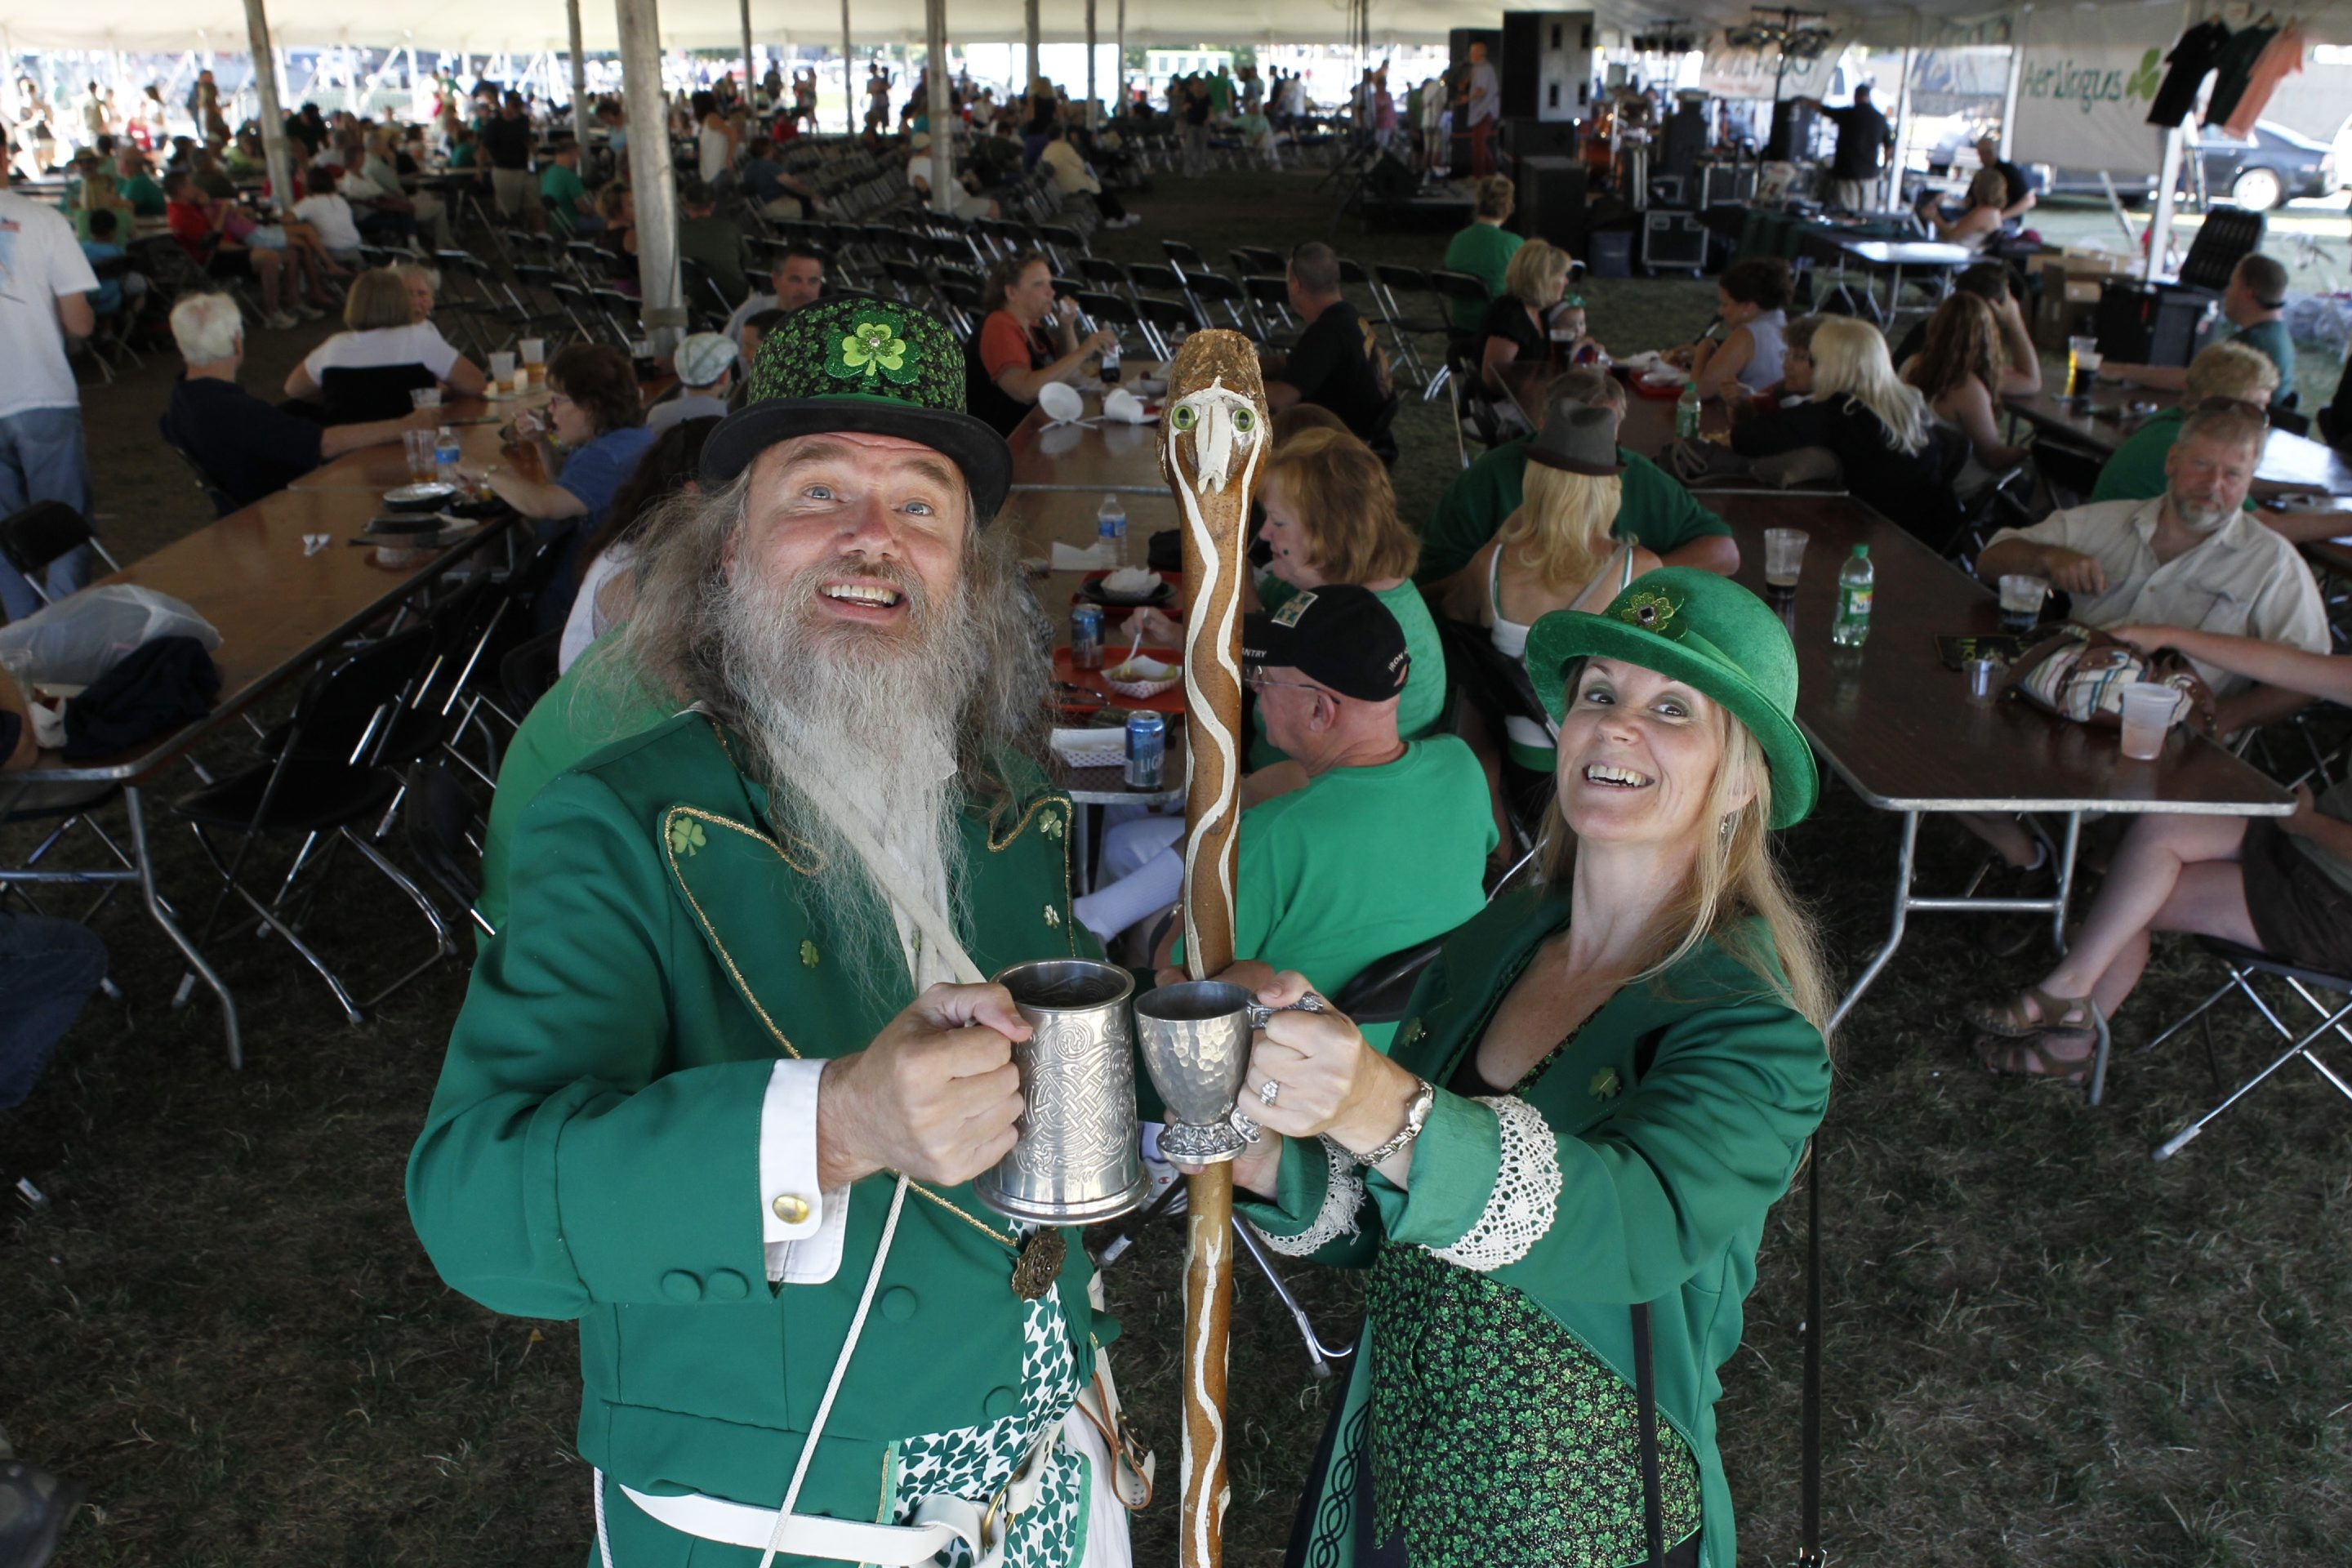 Clad in festive green from head to toe, Paddy and Peg Goodman toast each other at the 32nd annual Buffalo Irish Festival at Canalside on Saturday.